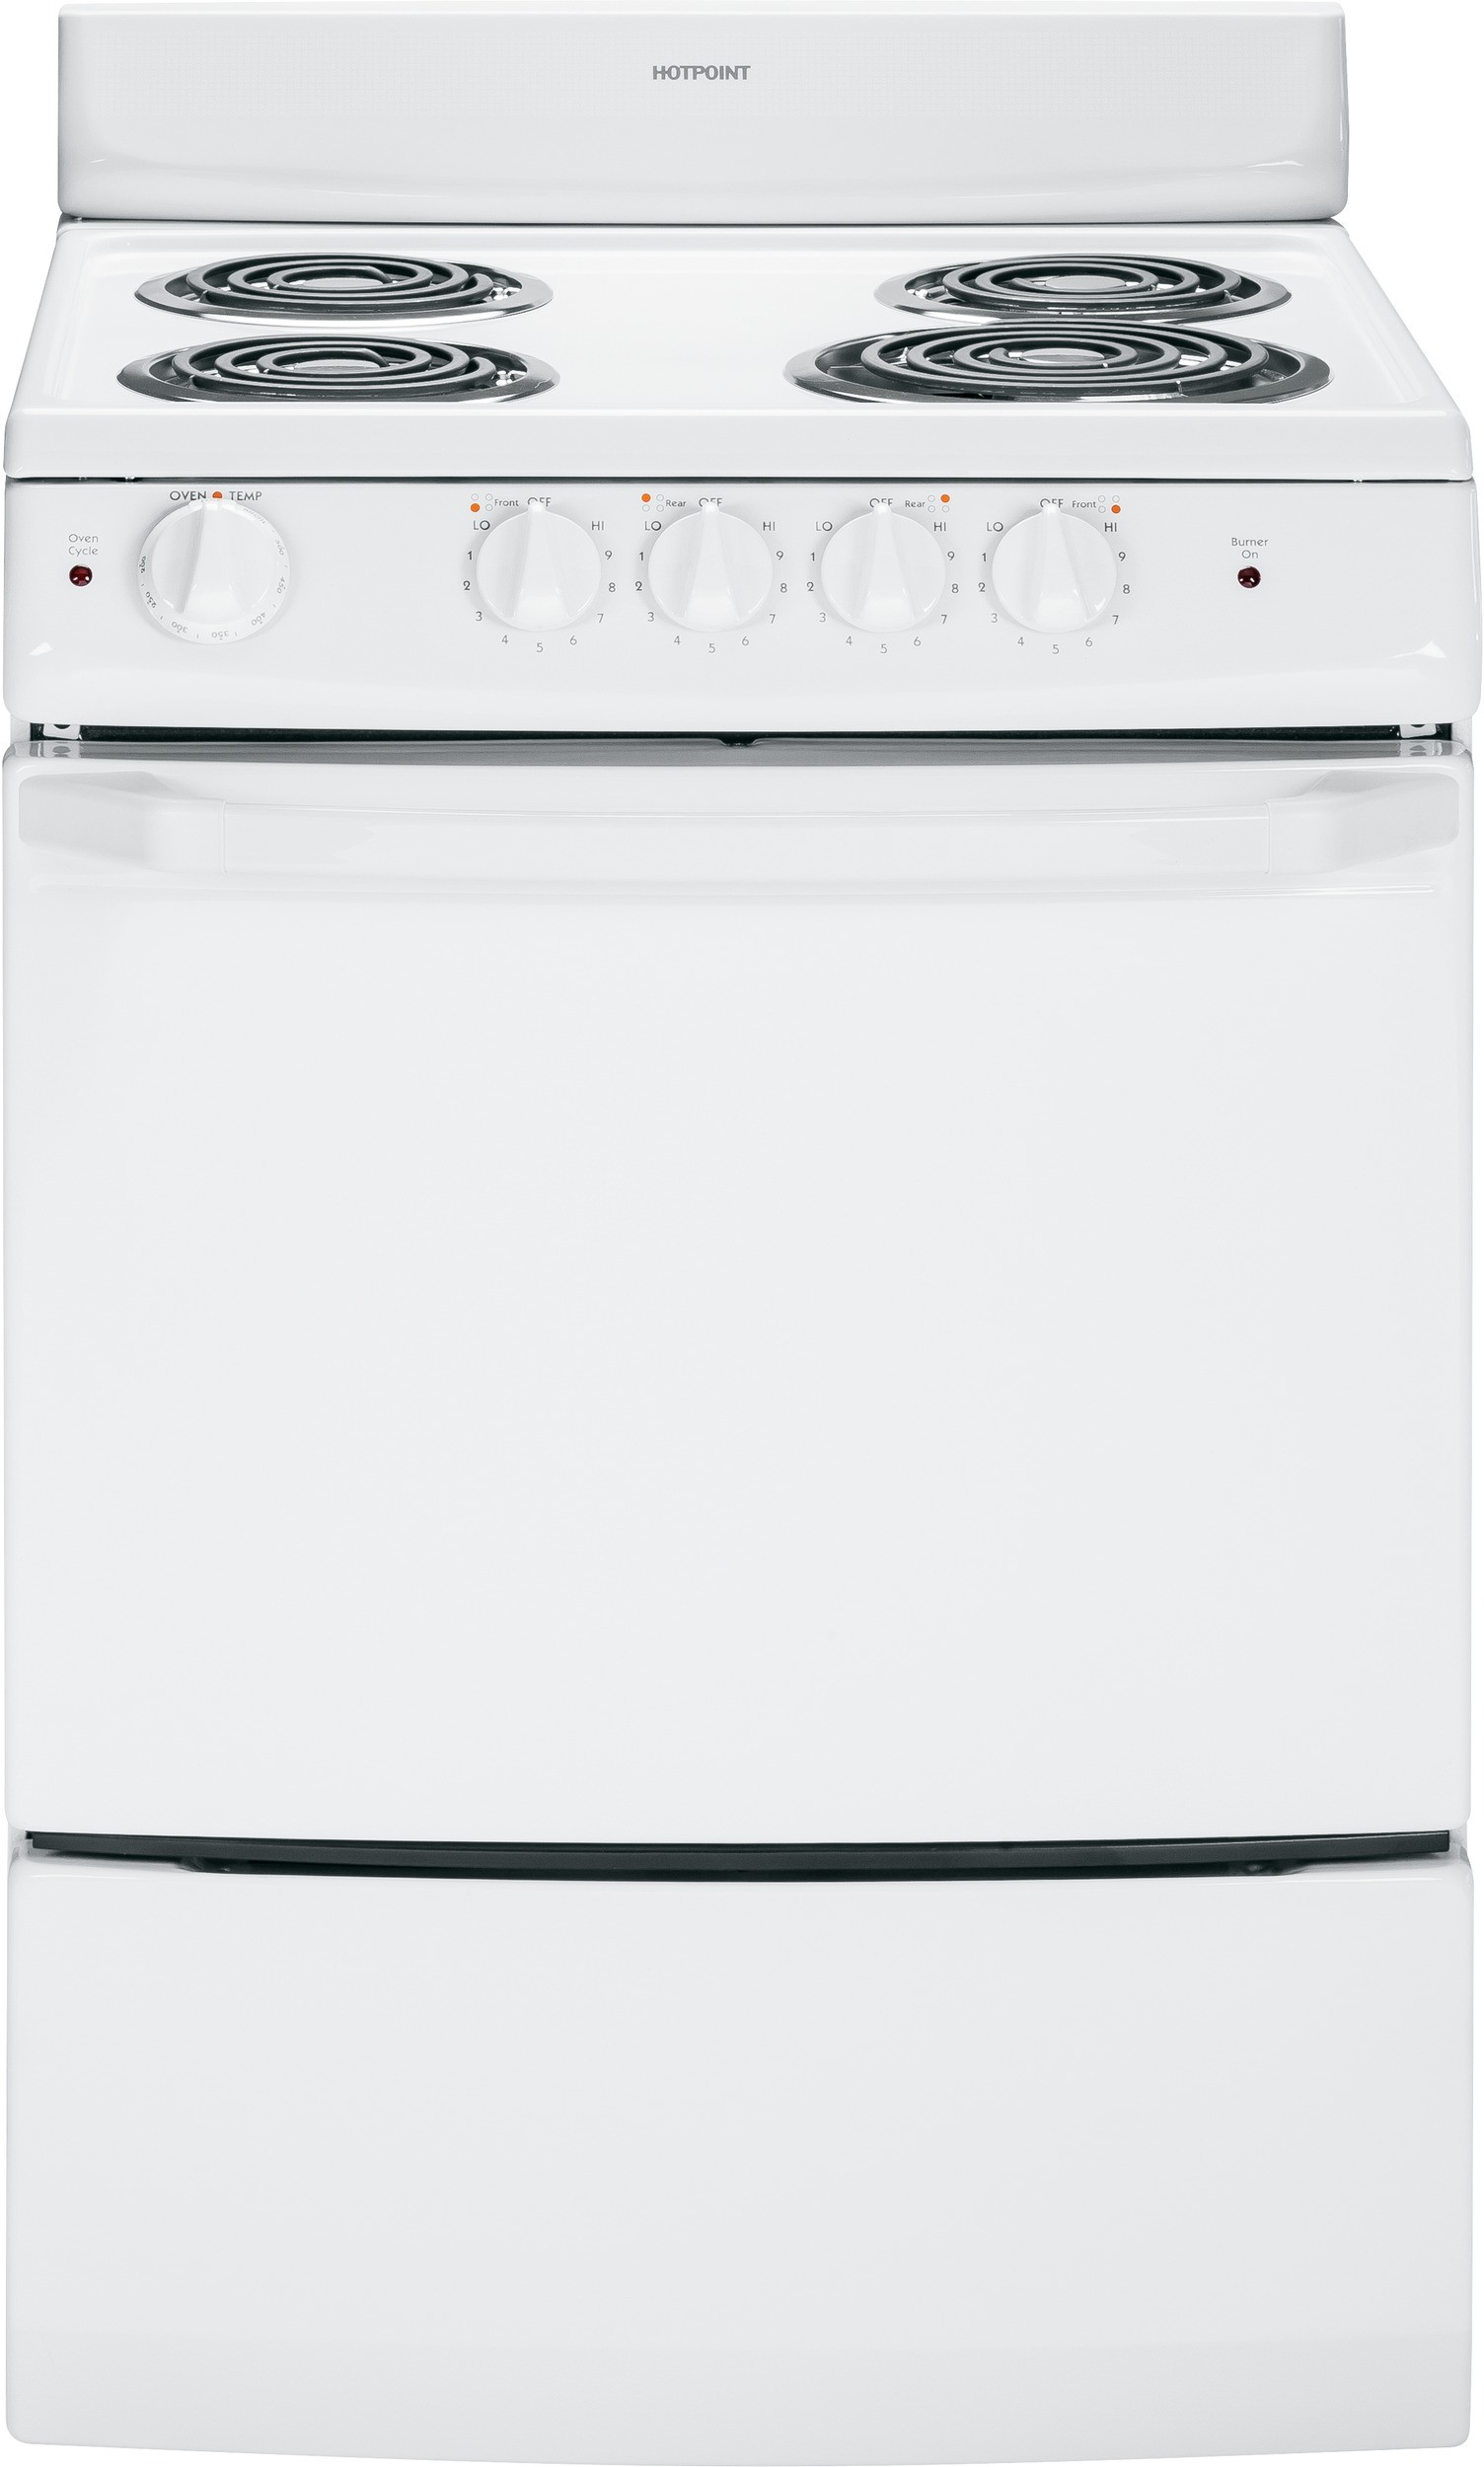 Hotpoint Wall Oven Manual Related Keywords Suggestions Dh53ws Newstyle Builtin Electric Double In White Ra724kwh 24 Inch Freestanding Range With